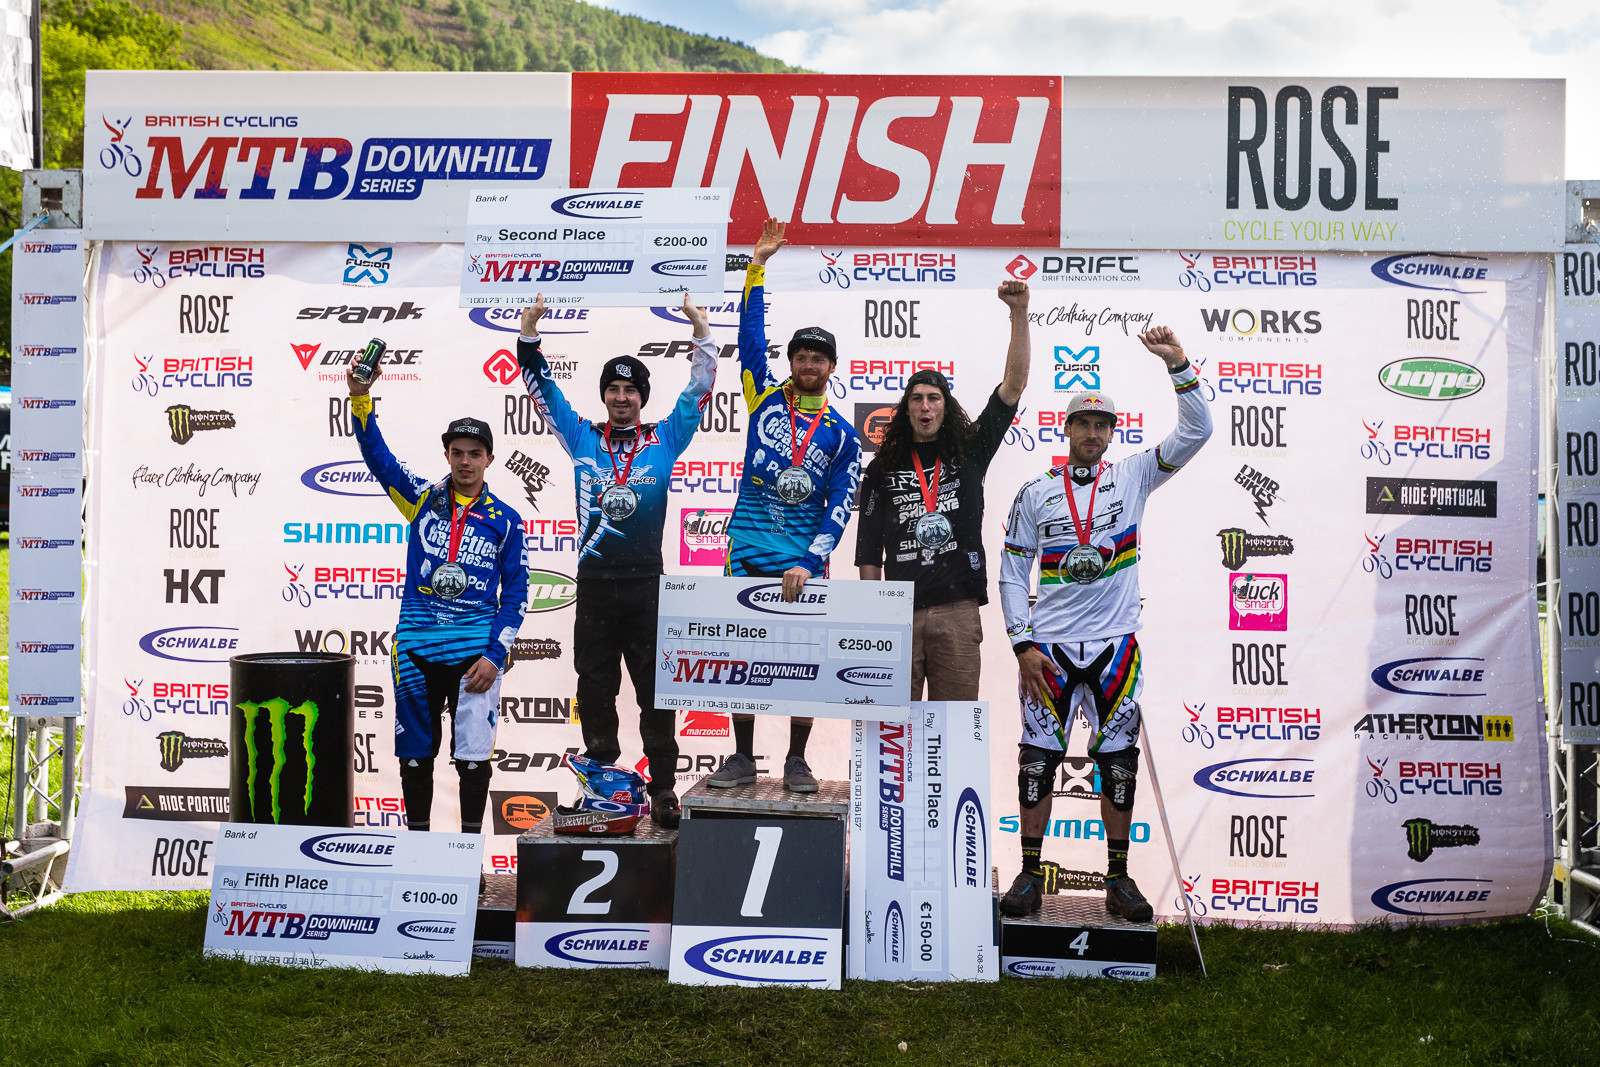 British Downhill Series Langollen Elite Men's DH Podium - RACE REPORT - British Downhill Series Llangollen - Mountain Biking Pictures - Vital MTB